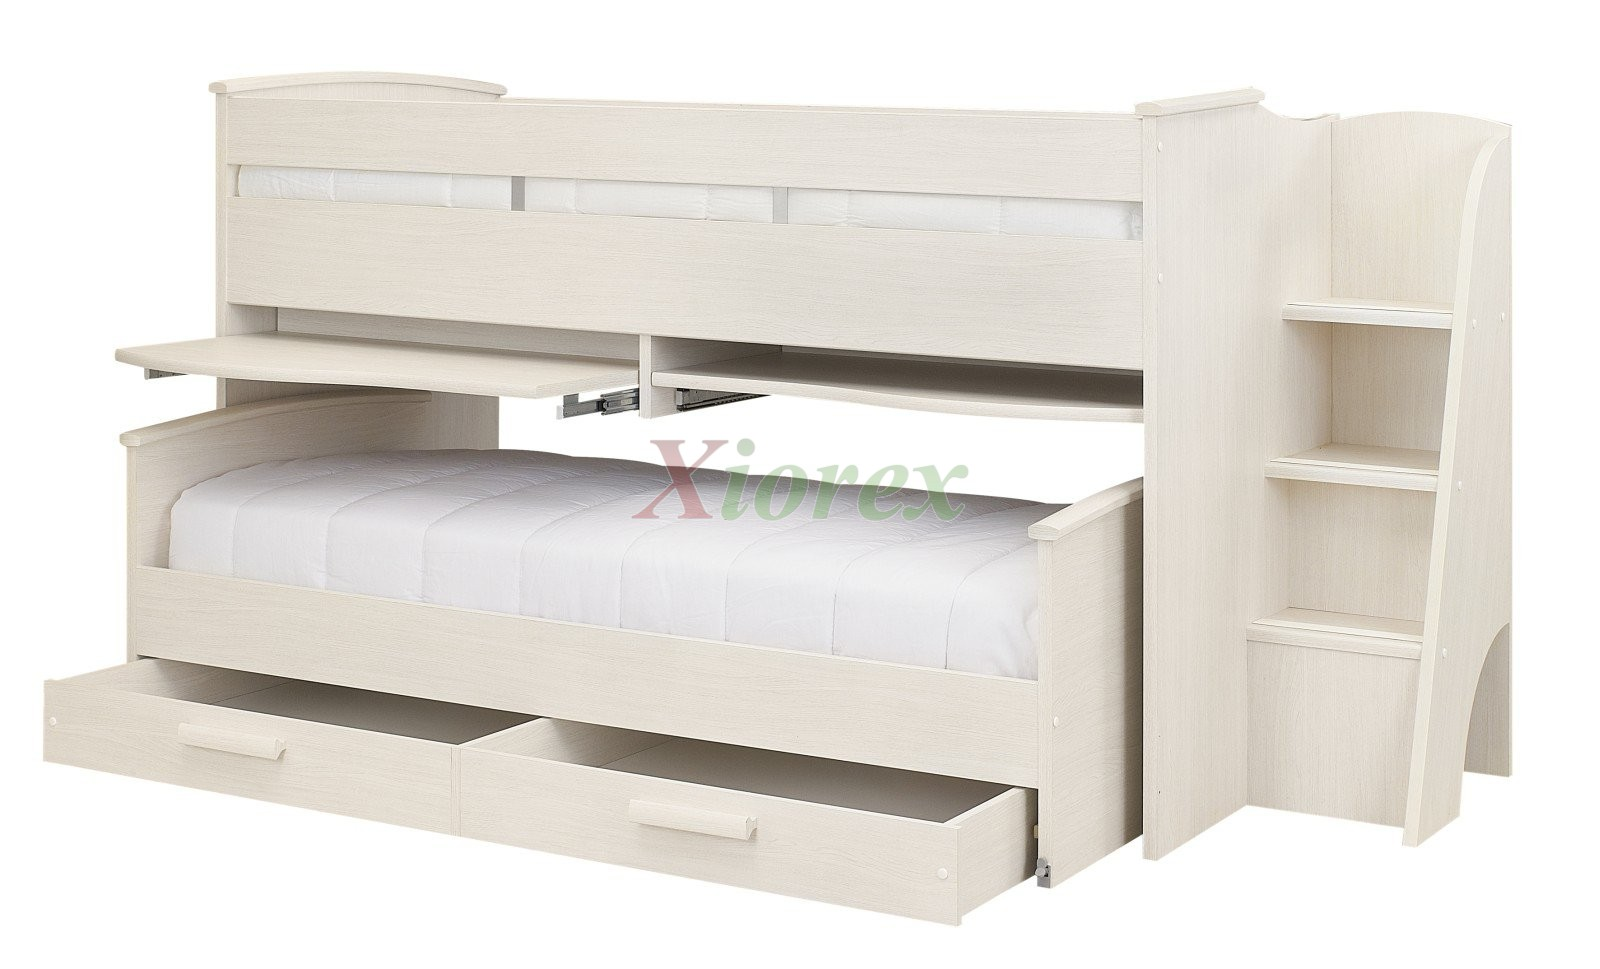 Cabin Bed Gami Montana Cabin Bed W Slide Out Bed In White